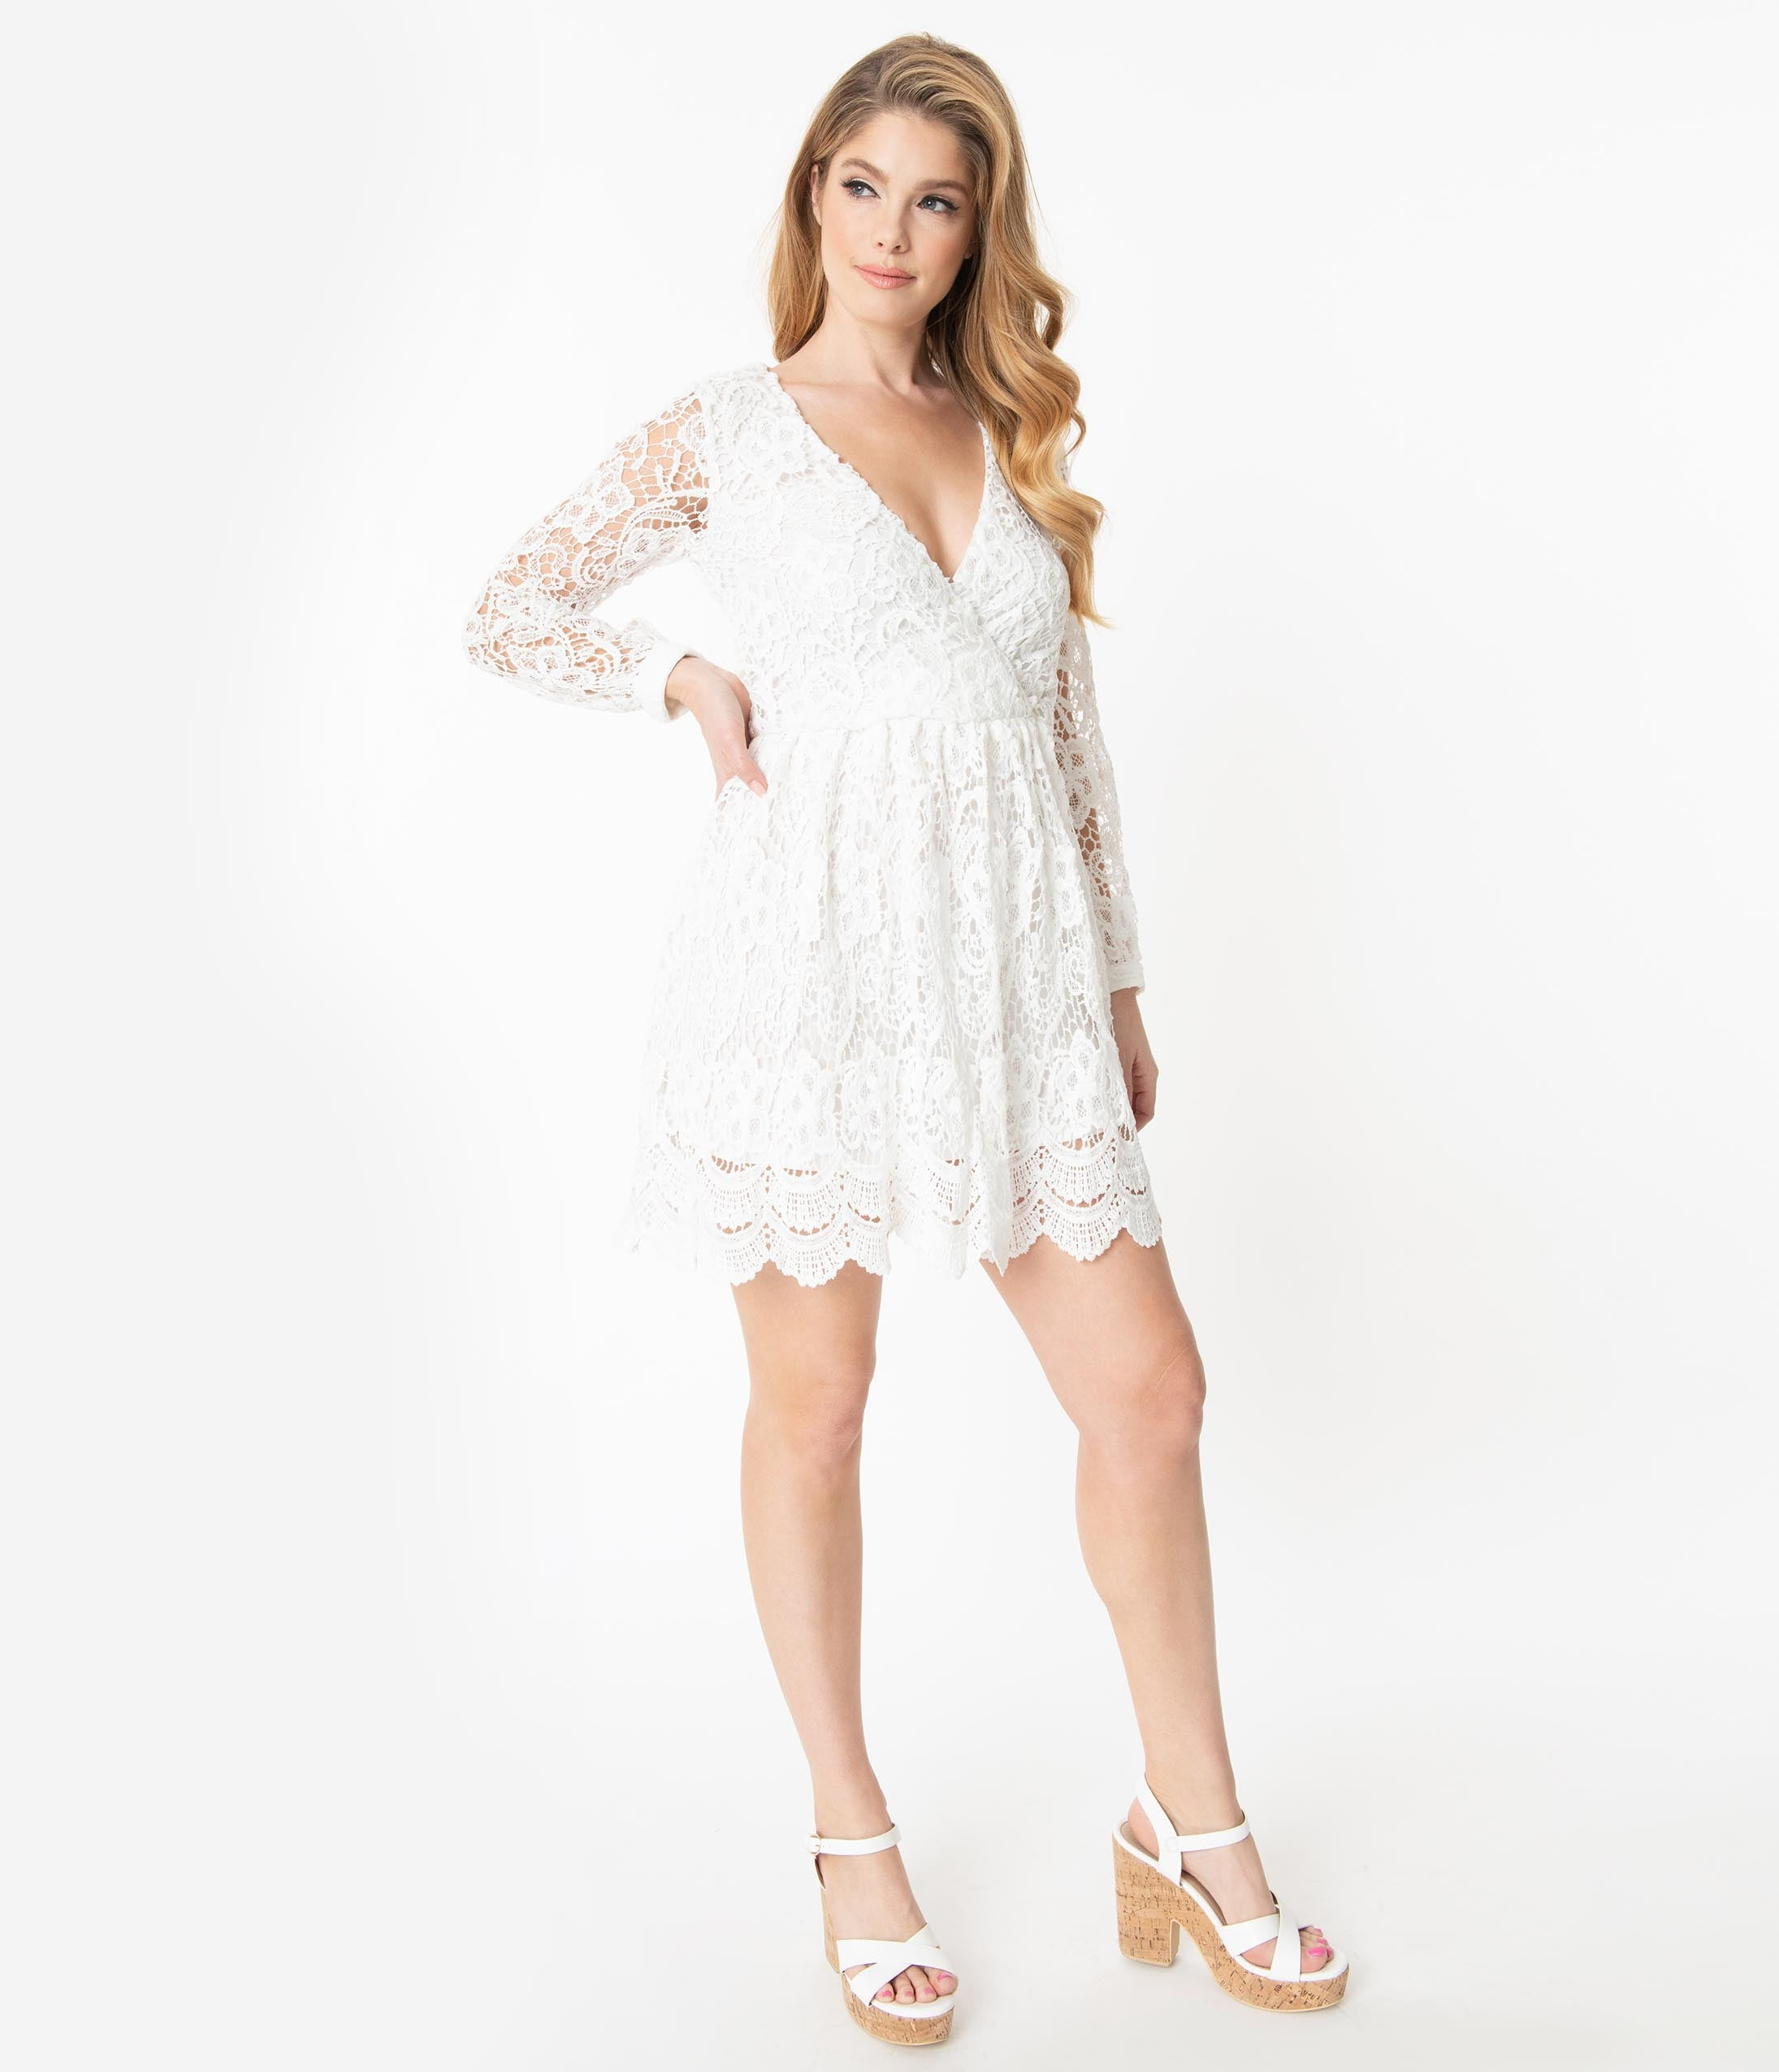 500 Vintage Style Dresses for Sale | Vintage Inspired Dresses White Crocheted Long Sleeve Dress $68.00 AT vintagedancer.com